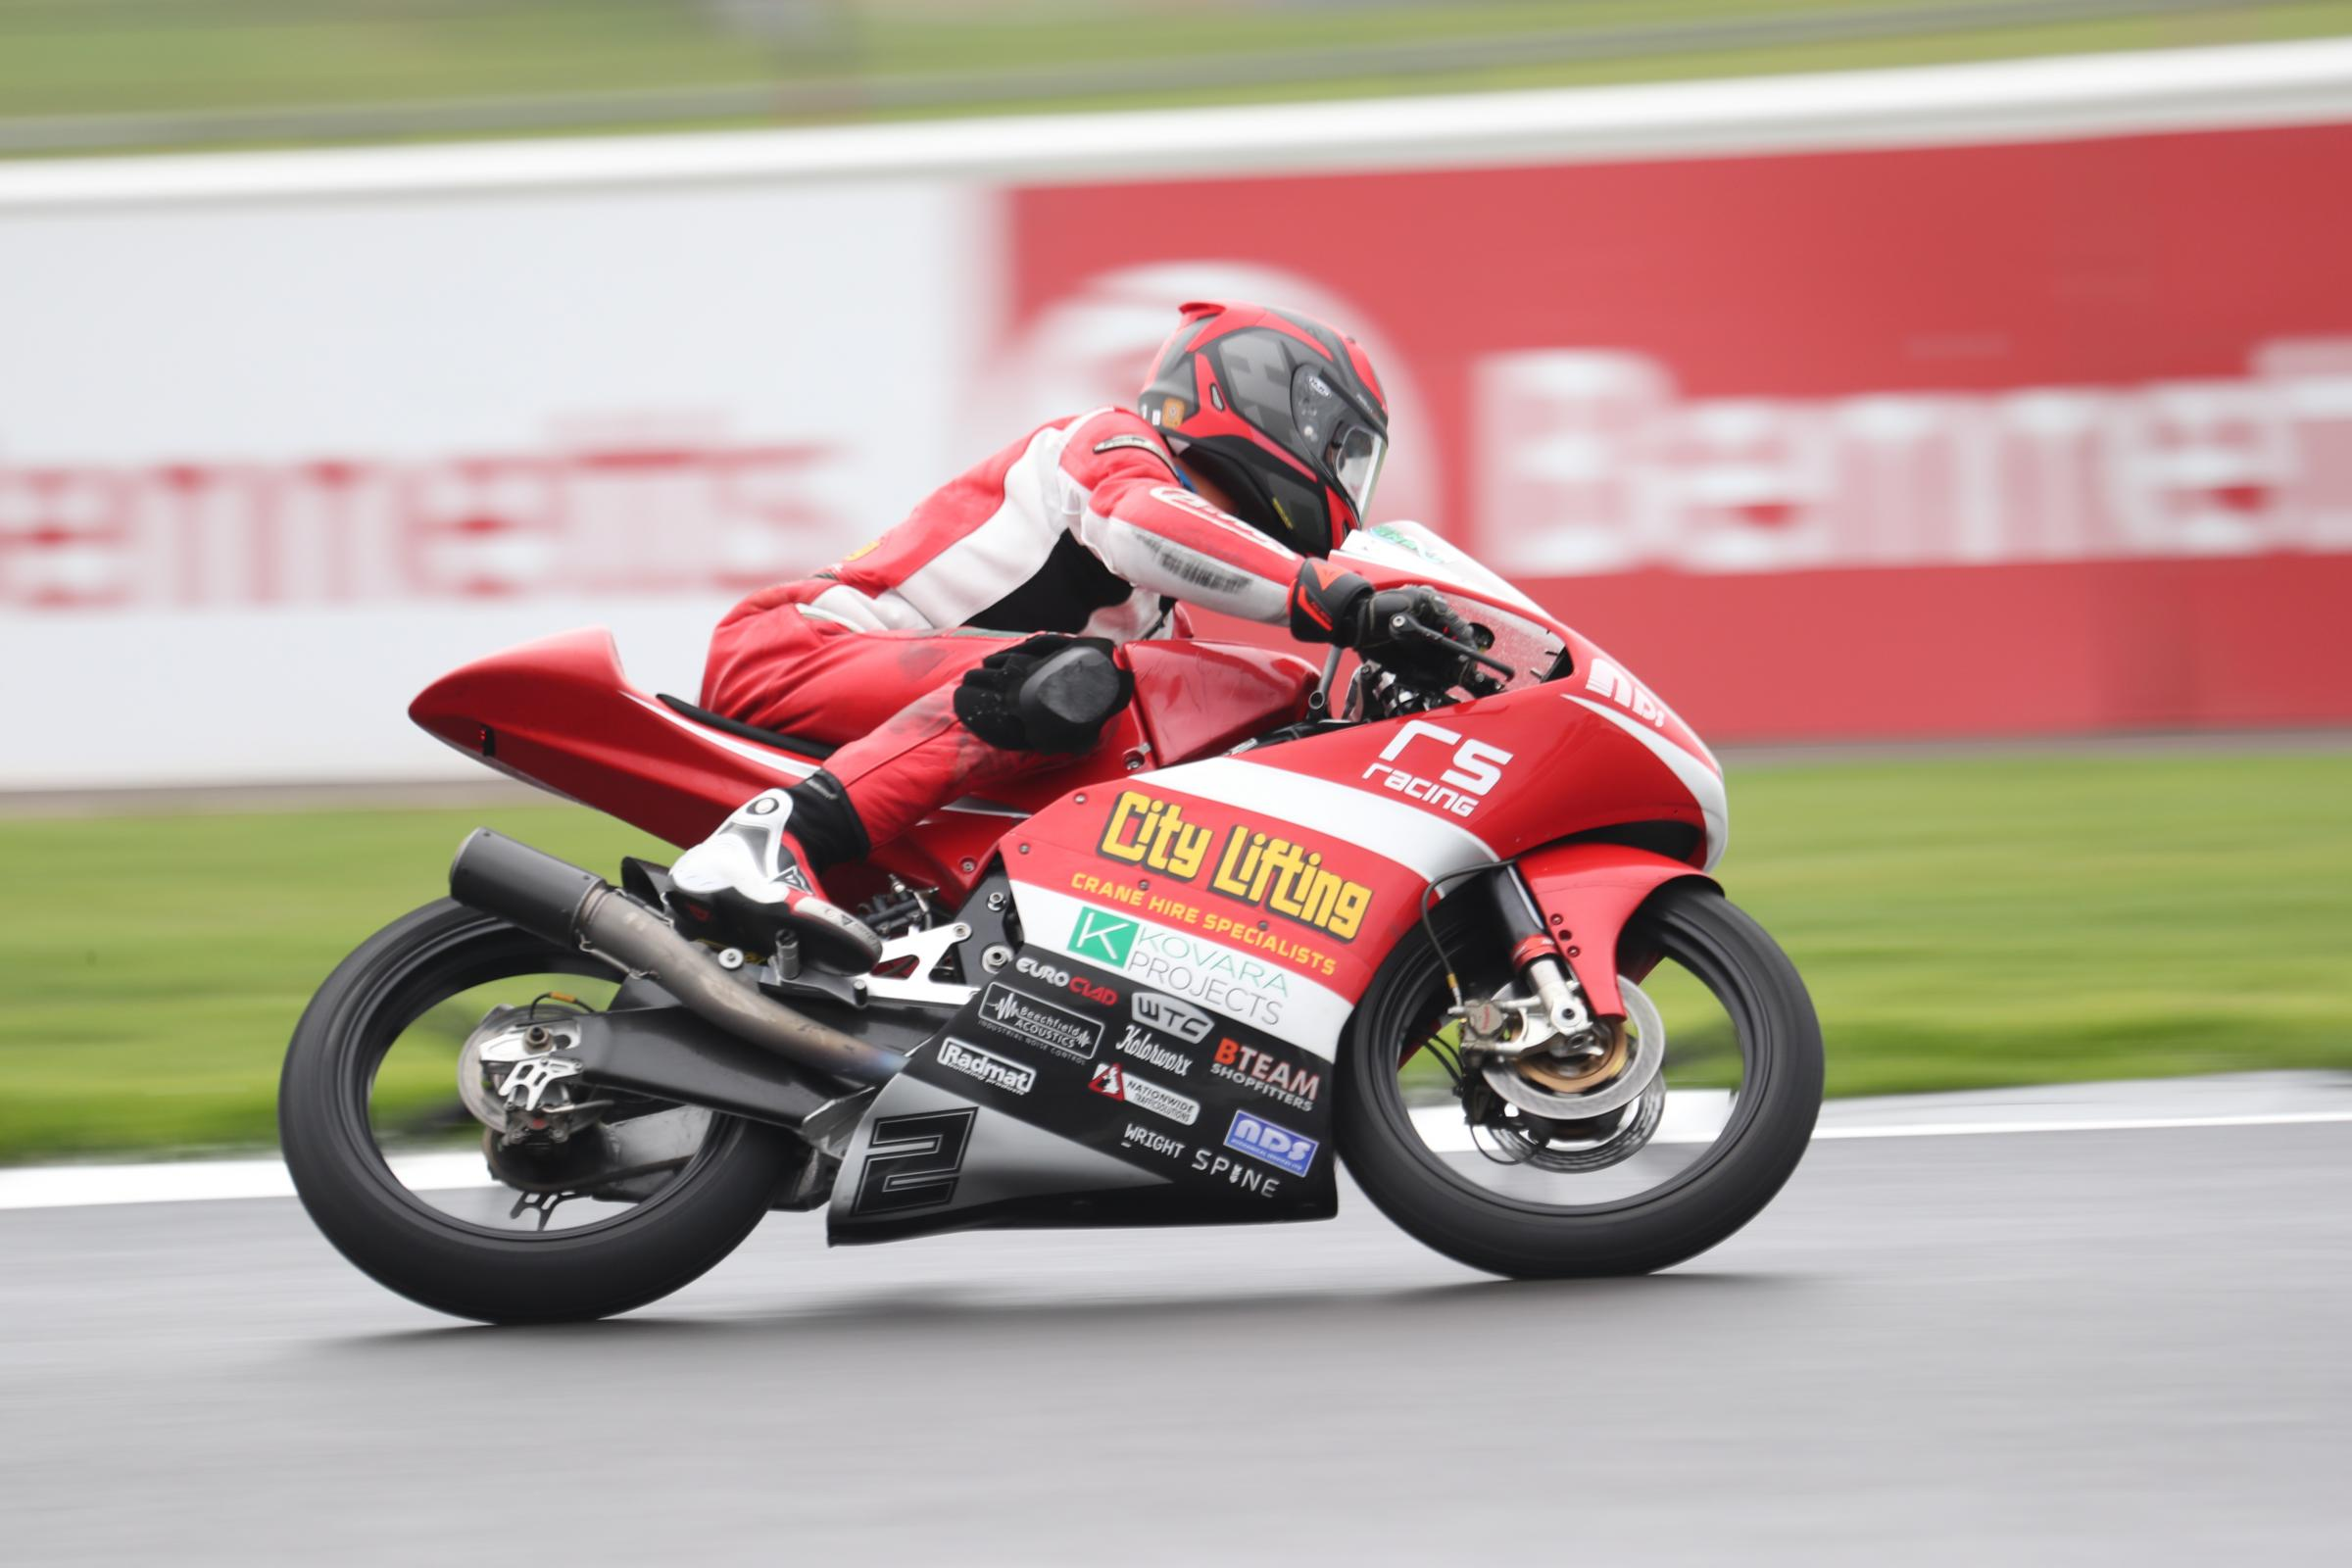 Jake Archer at Silverstone Image:Kerry Rawson